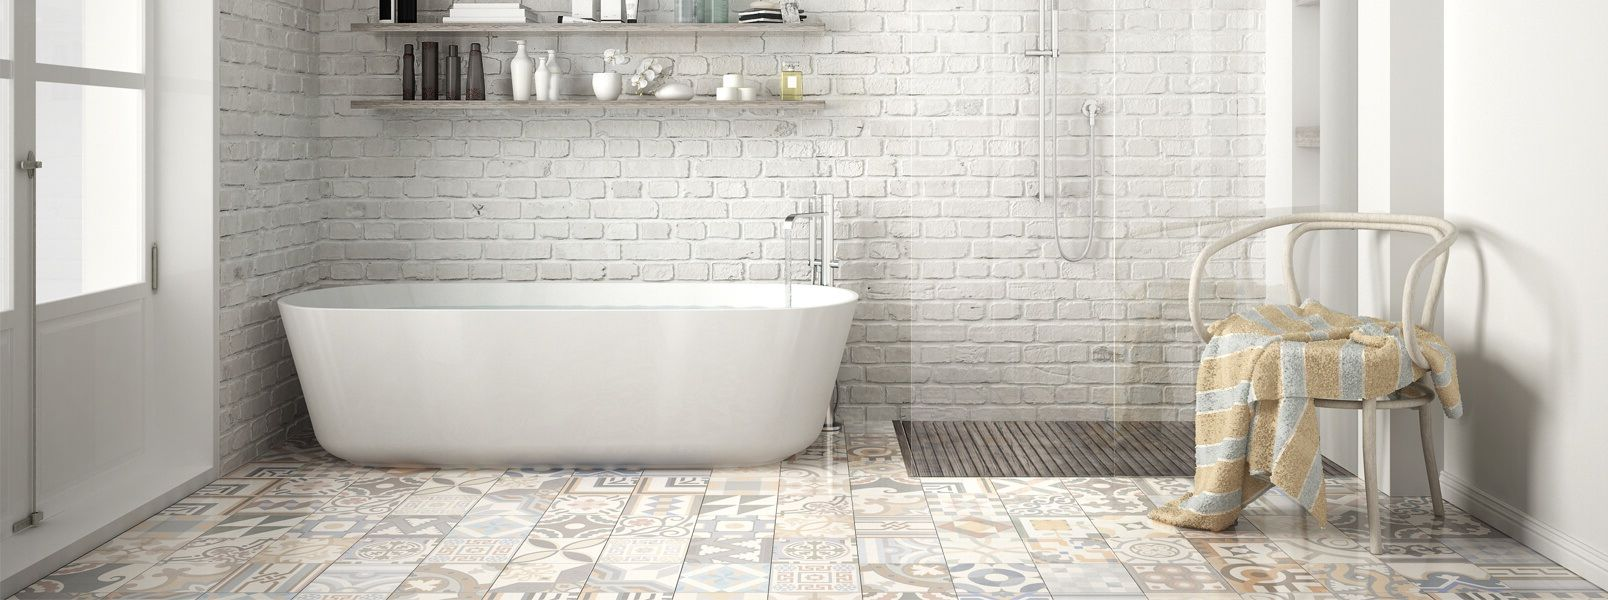 Badezimmer ideen mitte des jahrhunderts modern why it is not the best time for bathroom flooring trends  bathroom